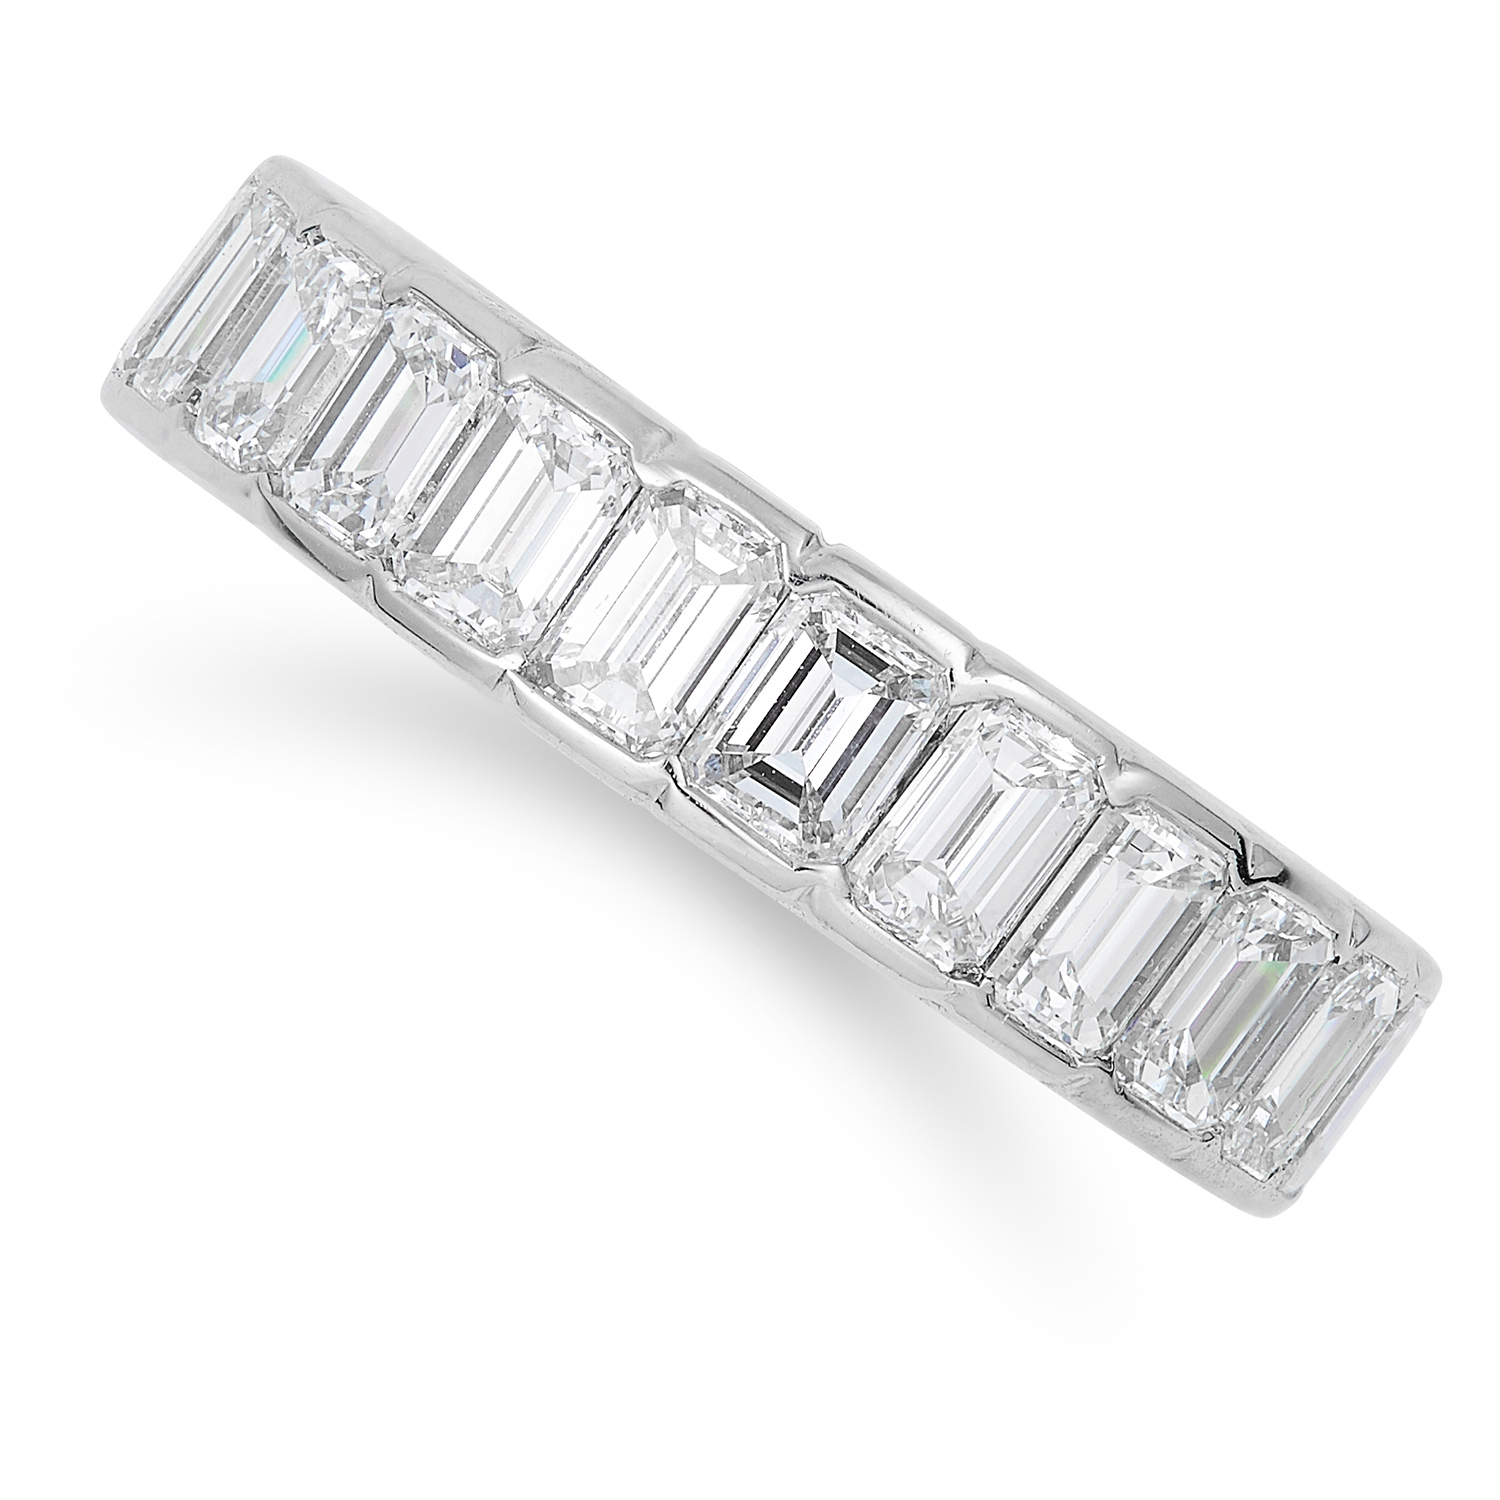 4.00 CARAT DIAMOND ETERNITY BAND in 18ct white gold or platinum, set with emerald cut diamonds